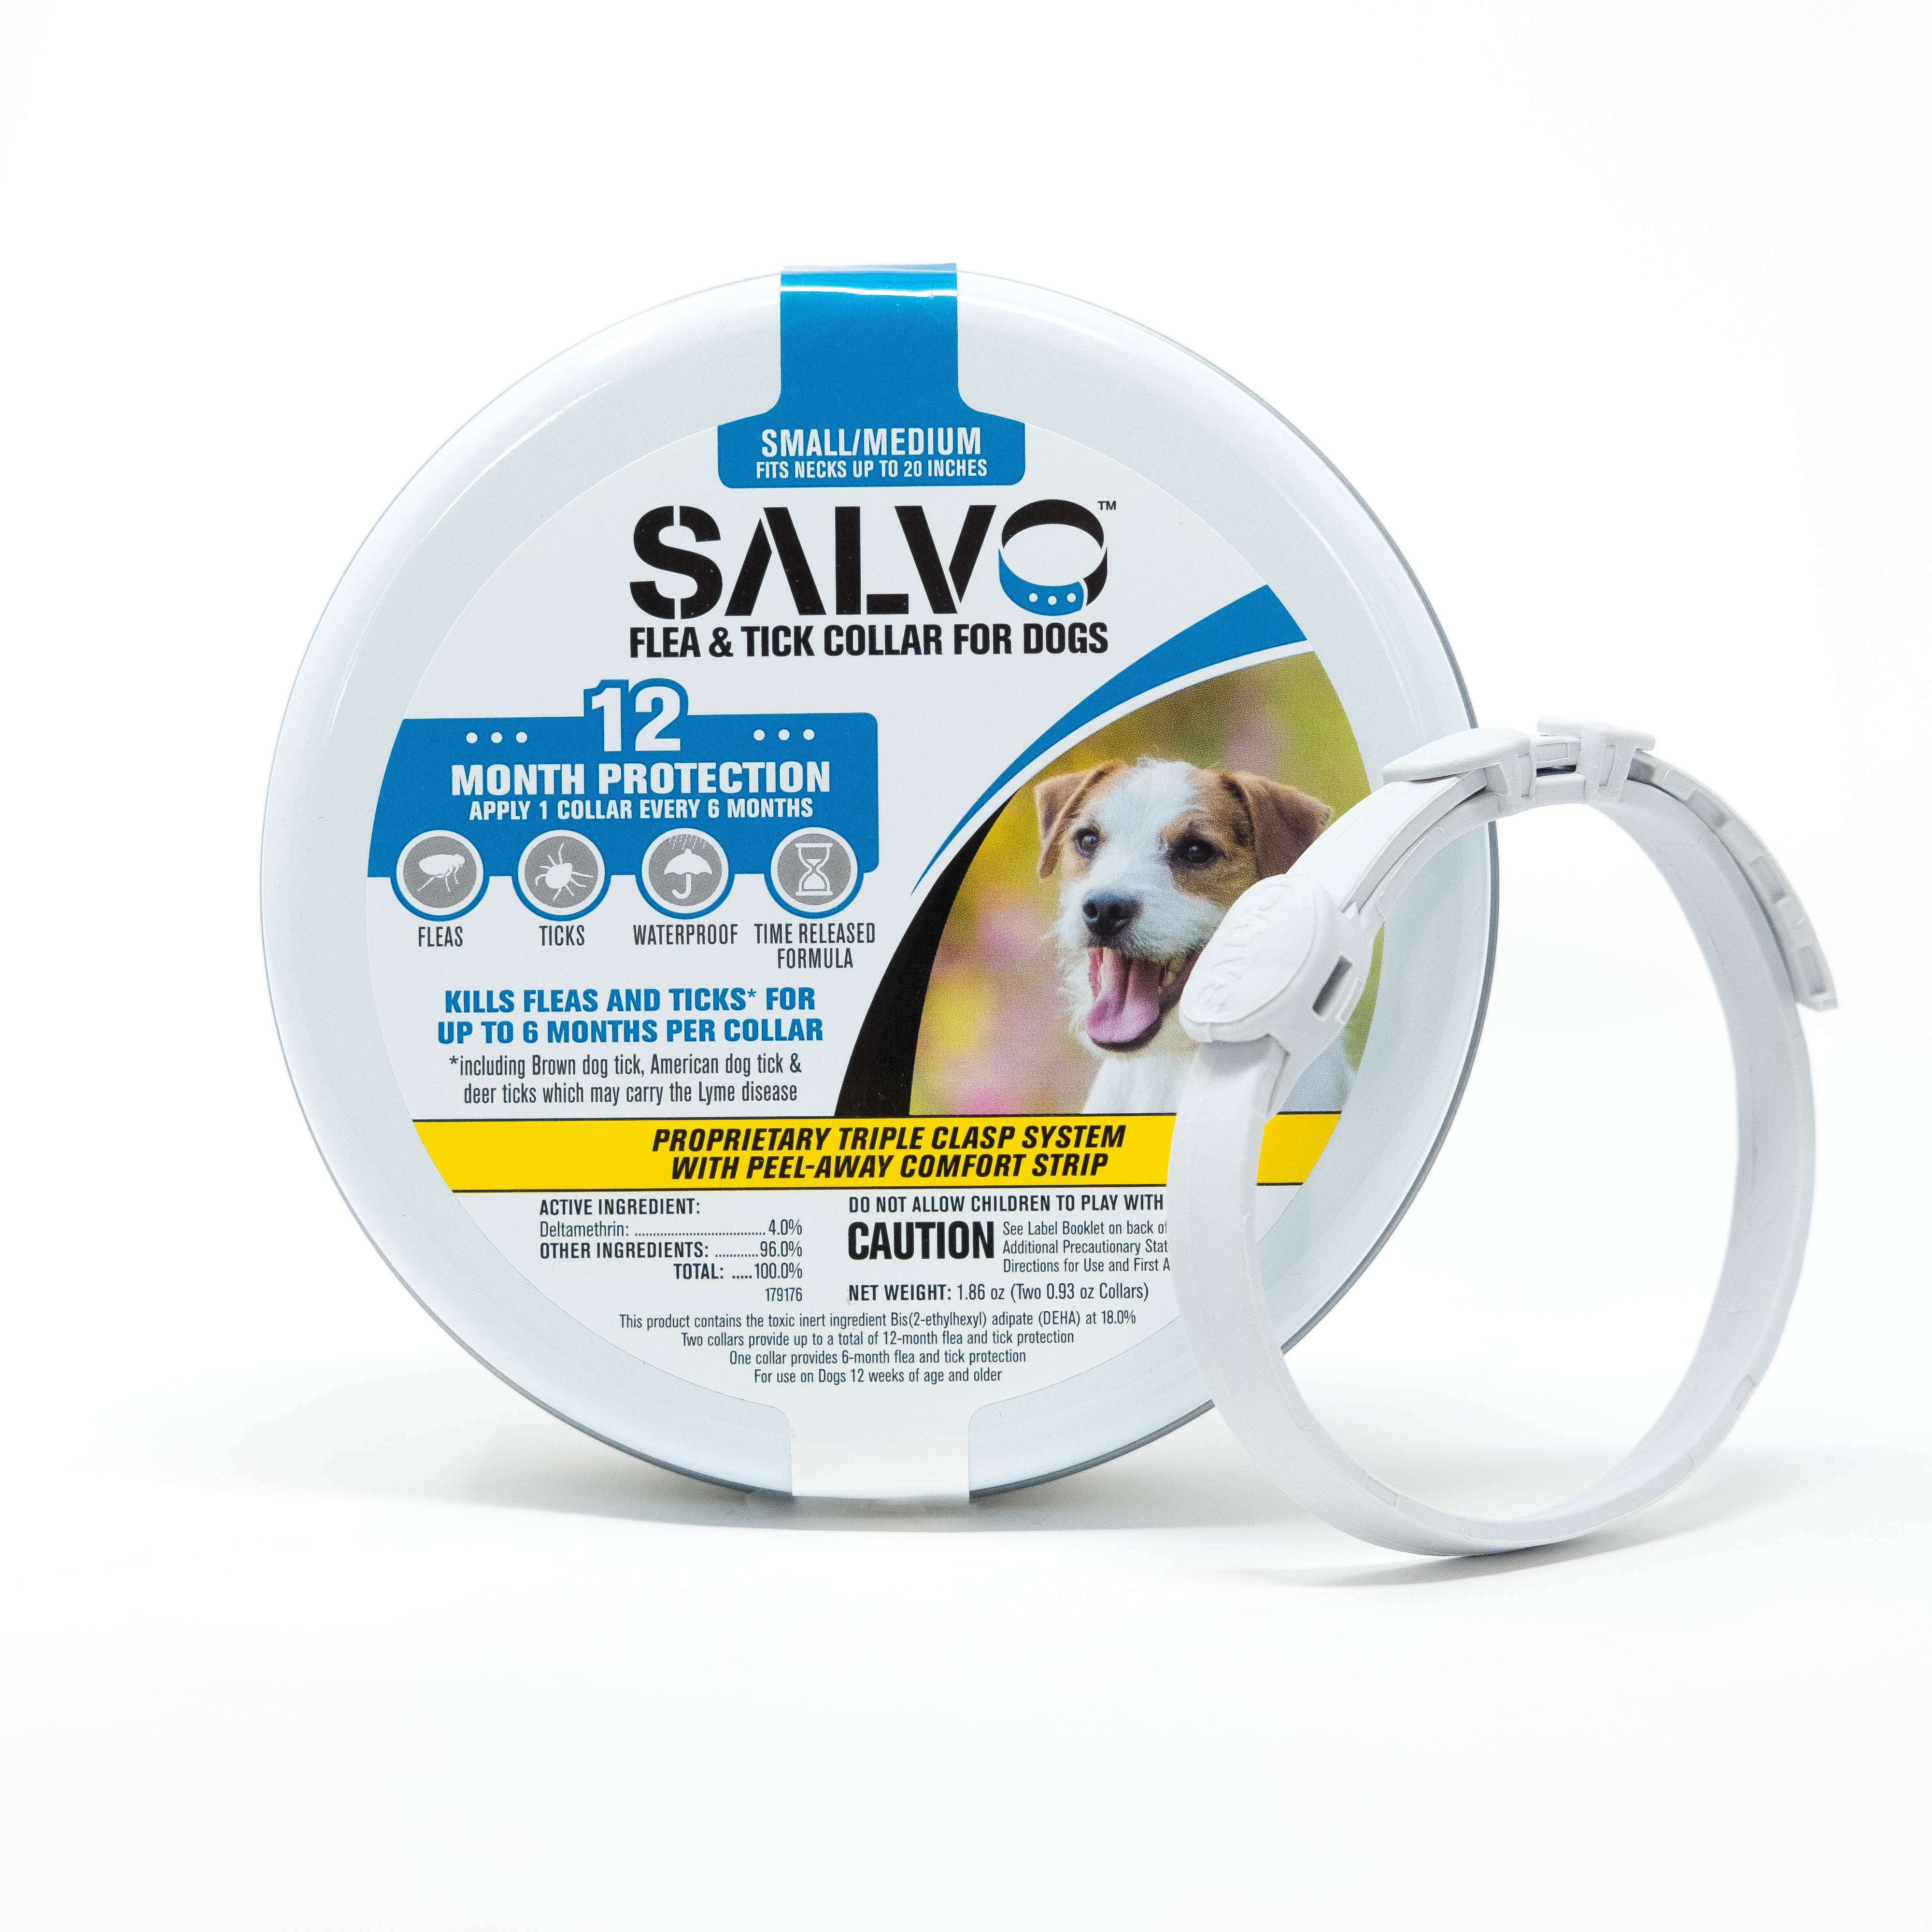 Salvo Flea & Tick Prevention Collar for Small Dogs, 12 Month Protection